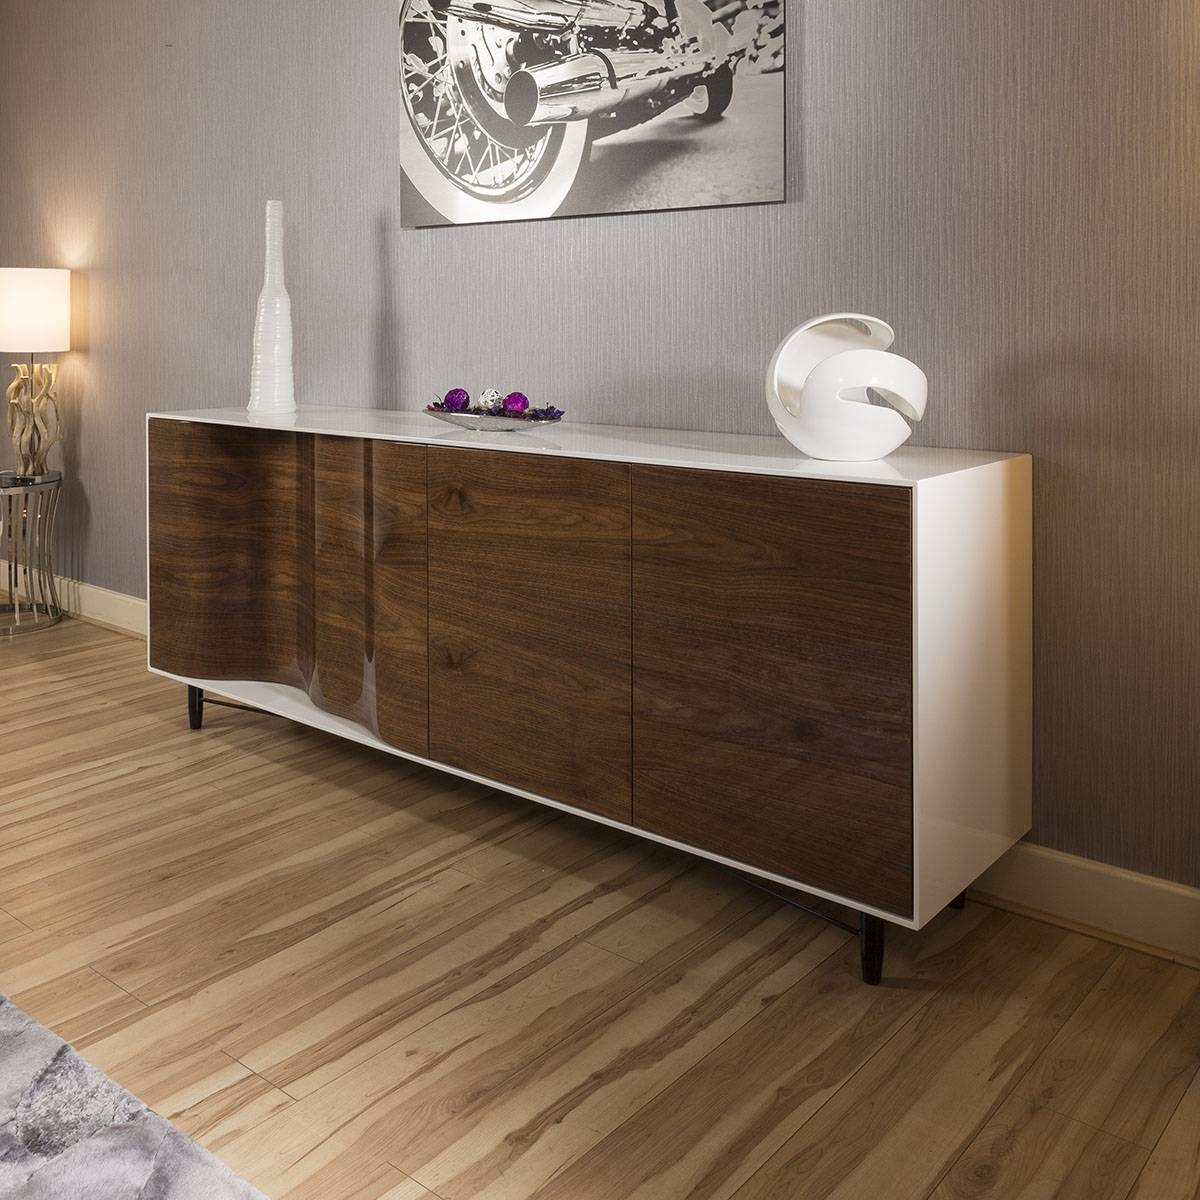 Excellent Luxury Large Modern Sideboard Cabinet High Gloss Walnut White With